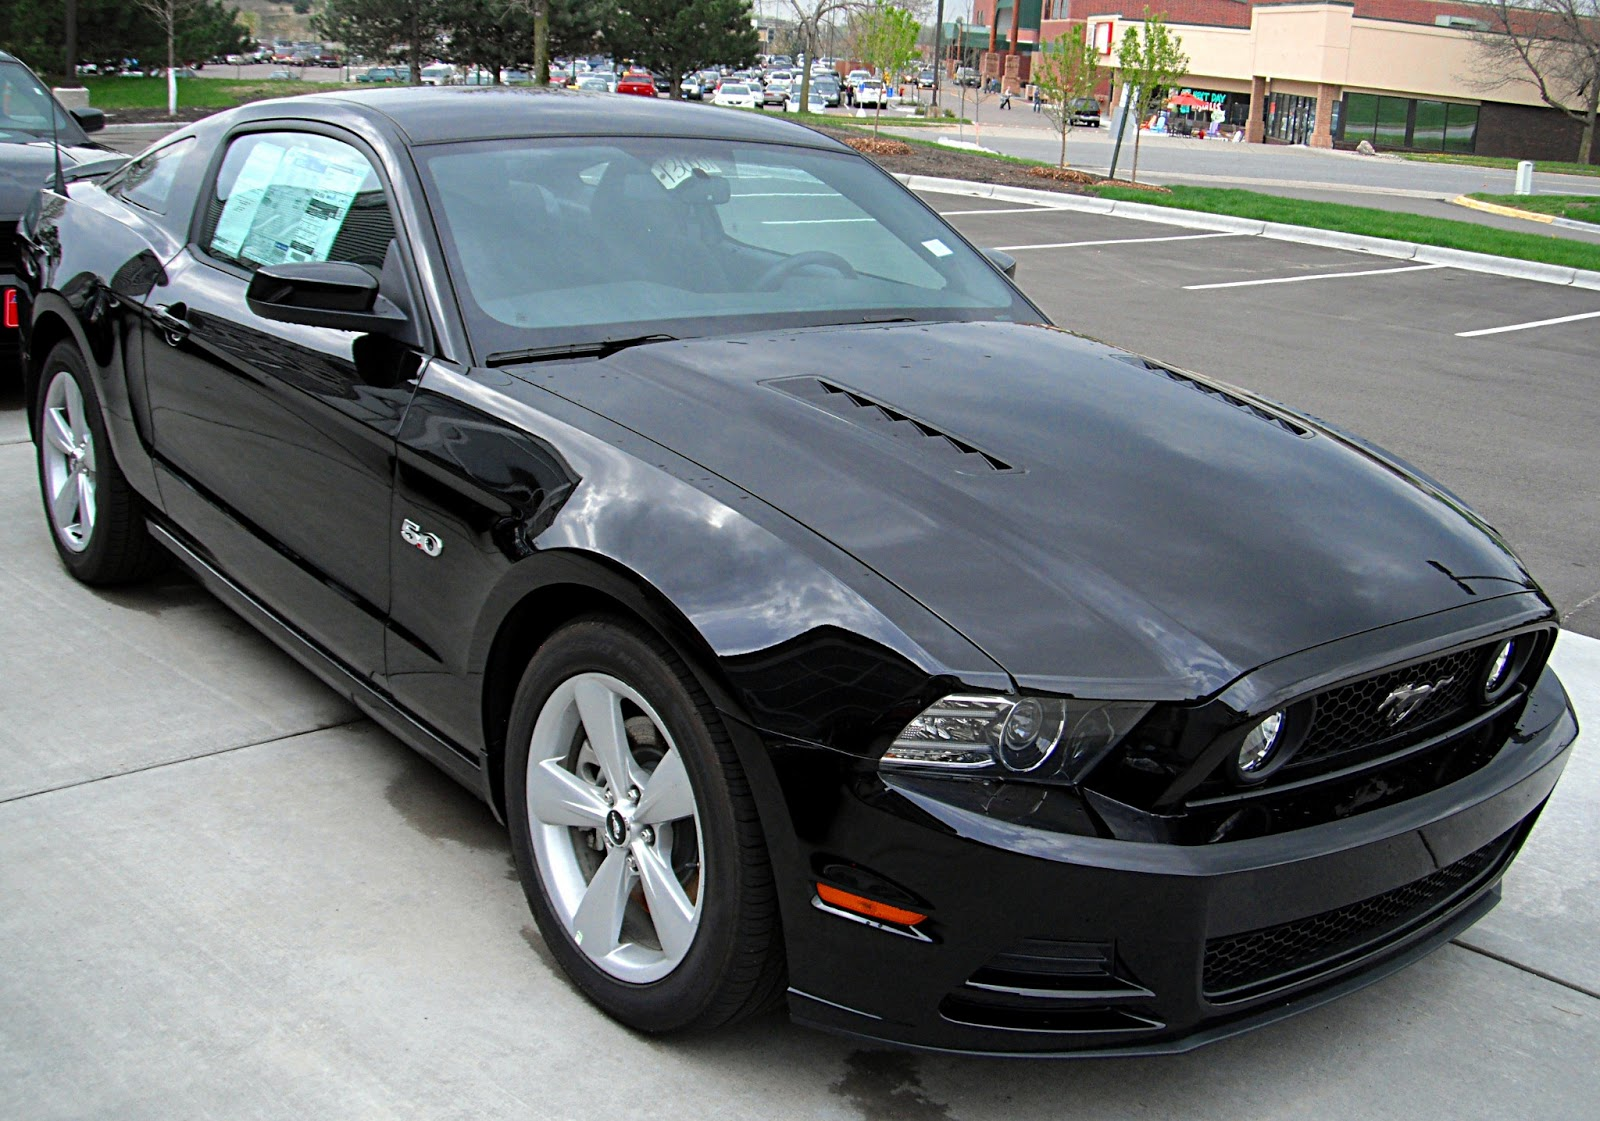 Sports Cars 2013 Ford Mustang Gt5 Wallpapers Hd